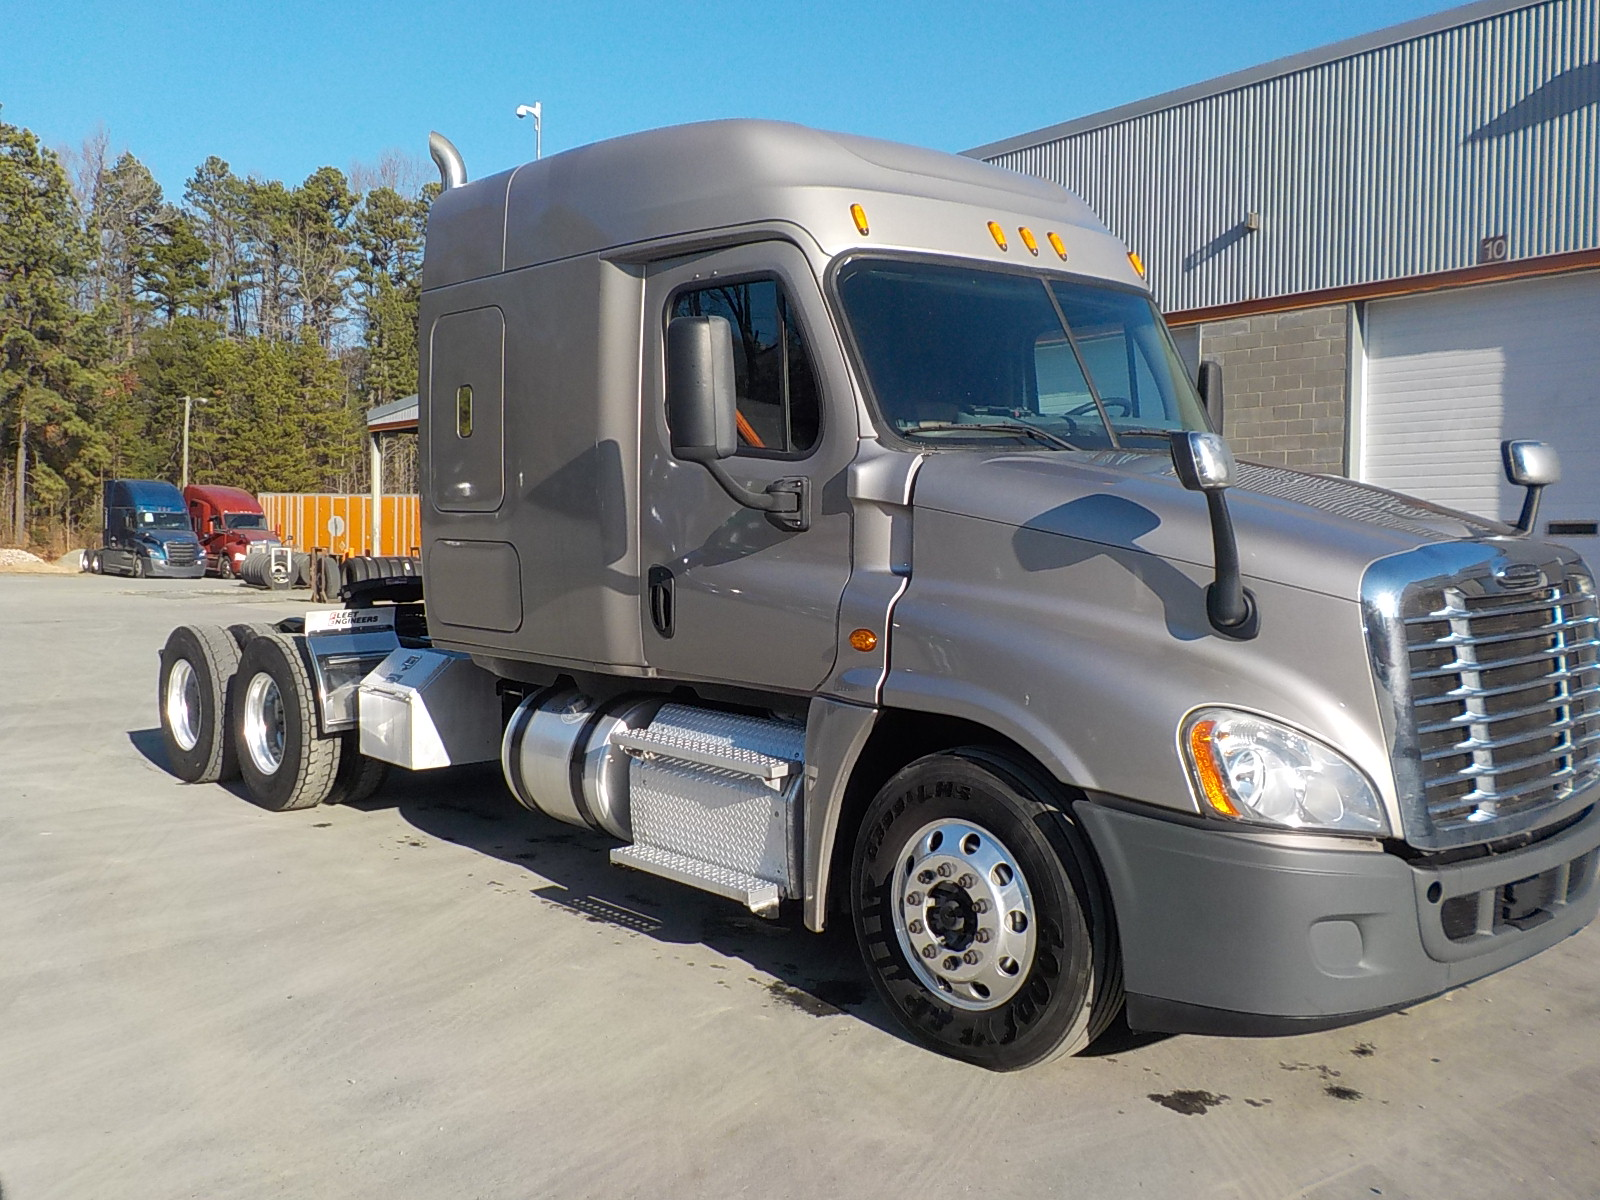 USED 2015 FREIGHTLINER CASCADIA DAYCAB TRUCK #84410